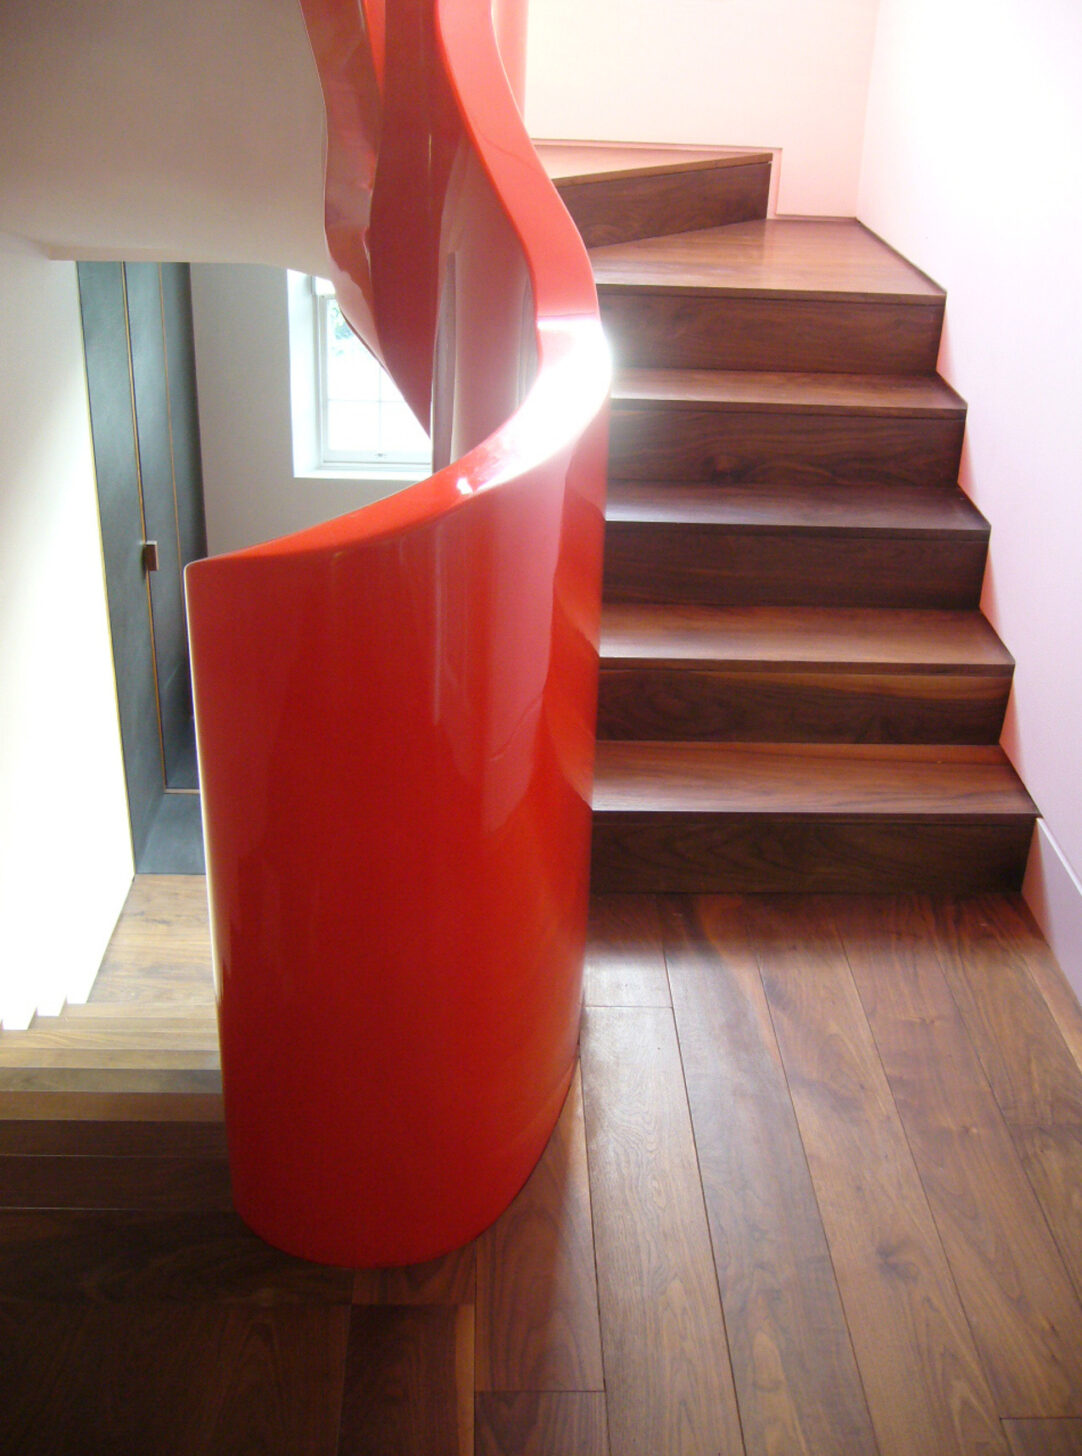 American Black Walnut Staircase with orange spindle